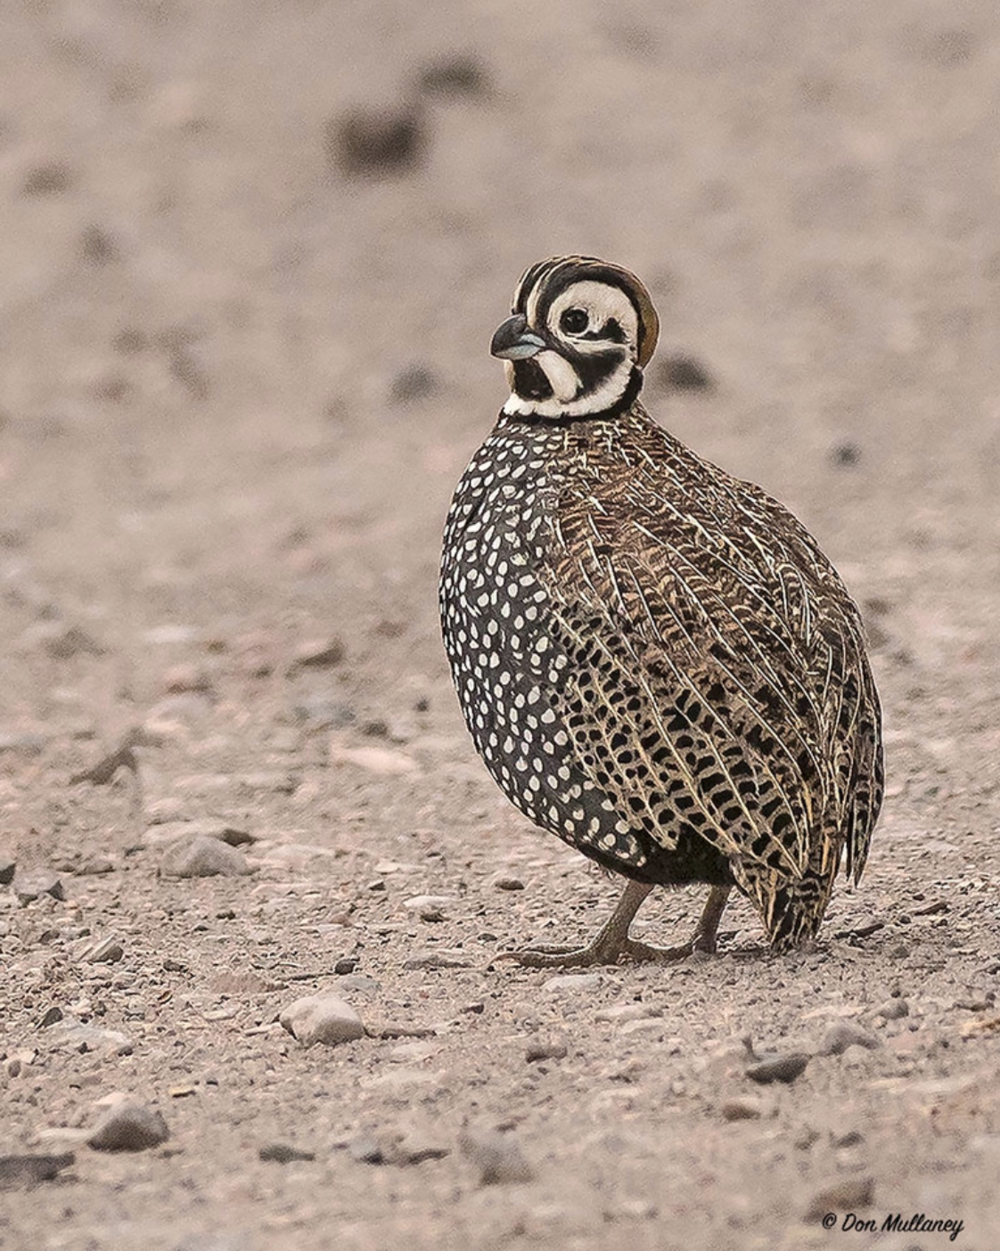 Montezuma Quail © Don Mullaney